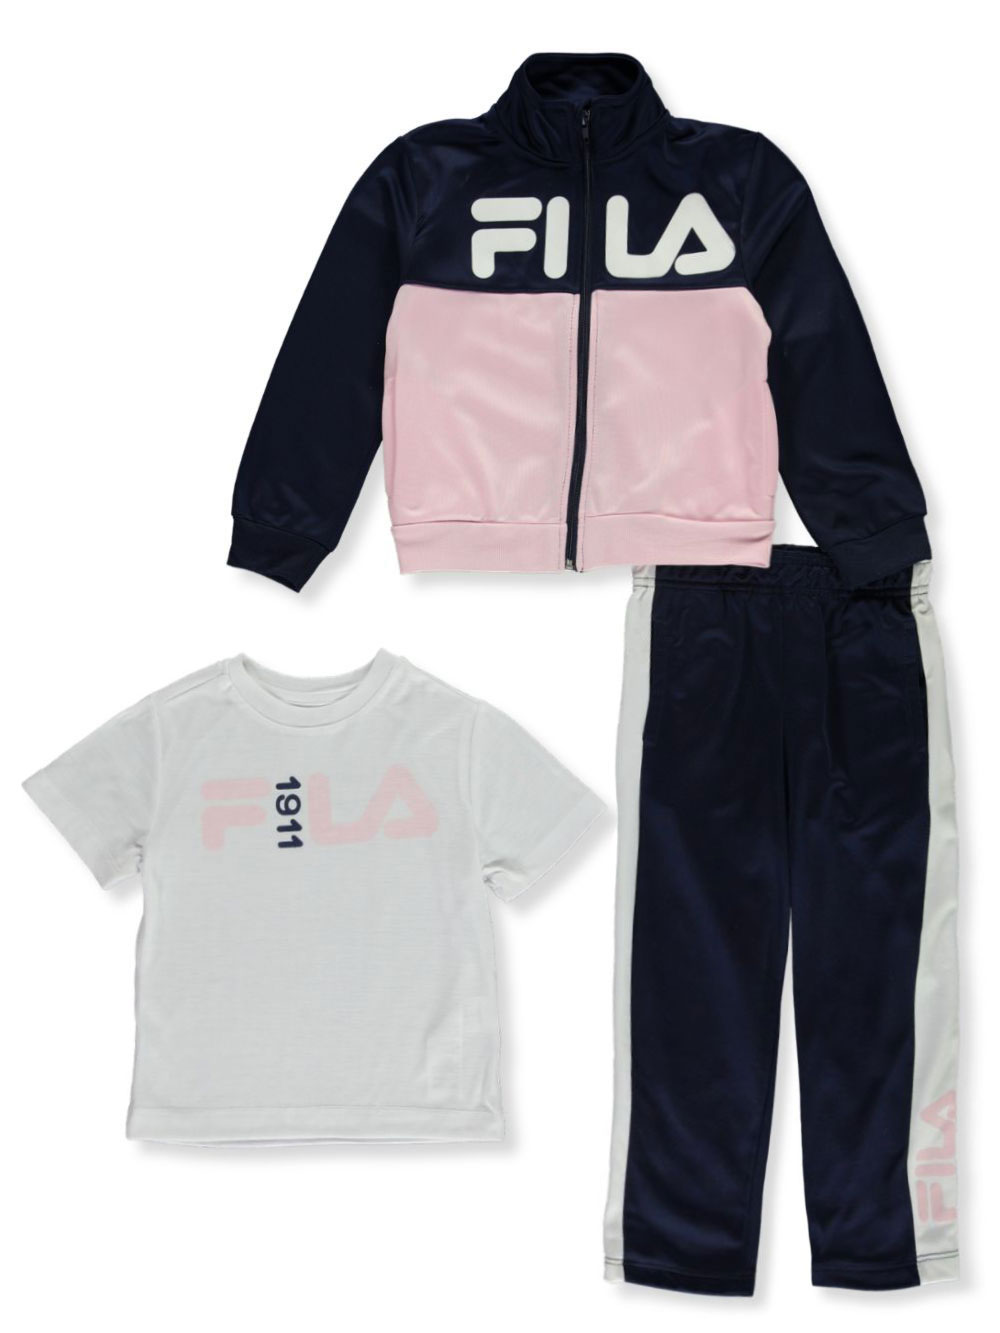 Girls' 1911 Logo 3 Piece Pants Set Outfit by Fila in black and navy